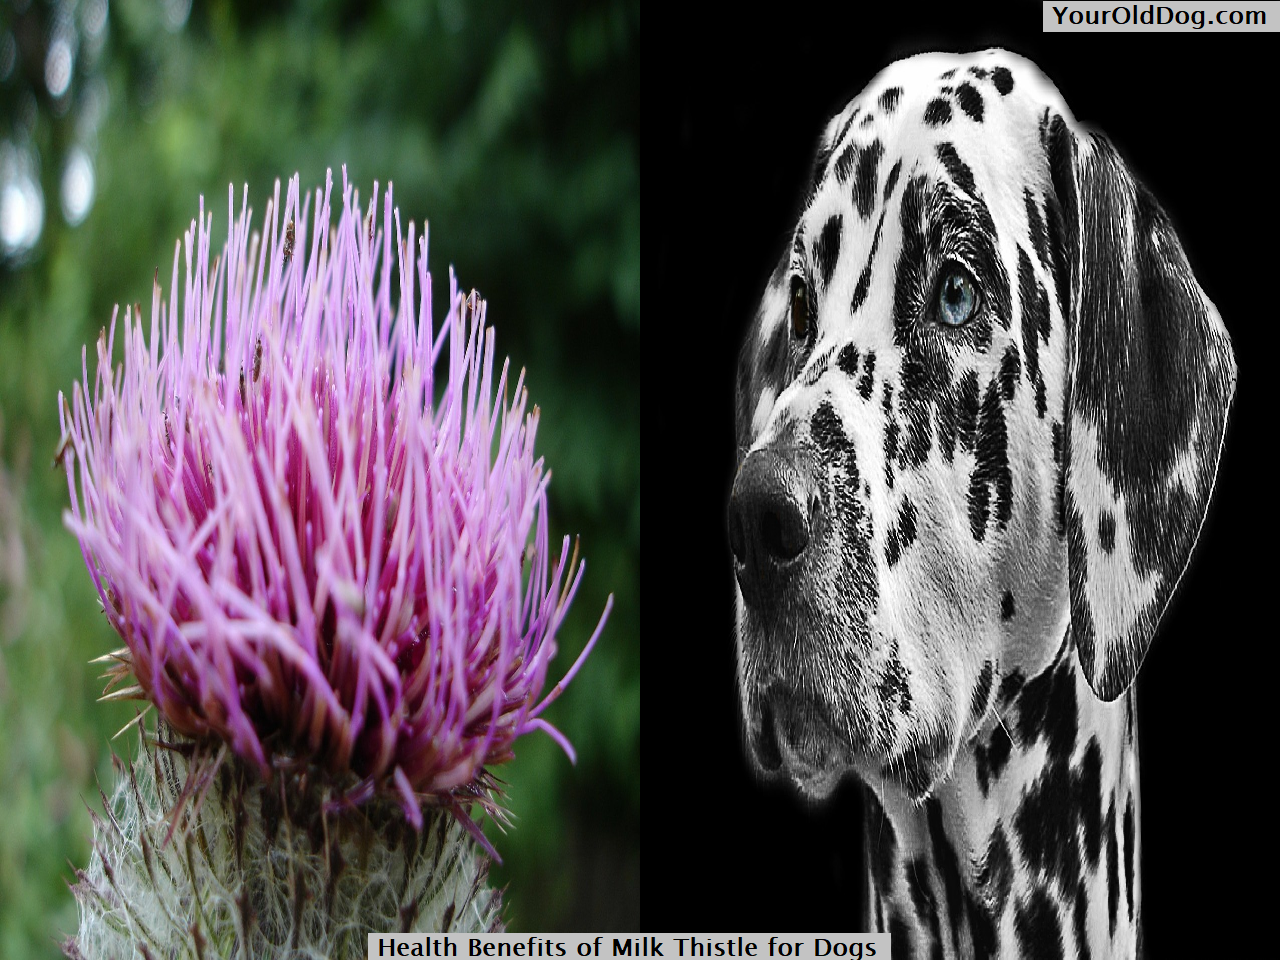 Health Benefits of Milk Thistle for Dogs